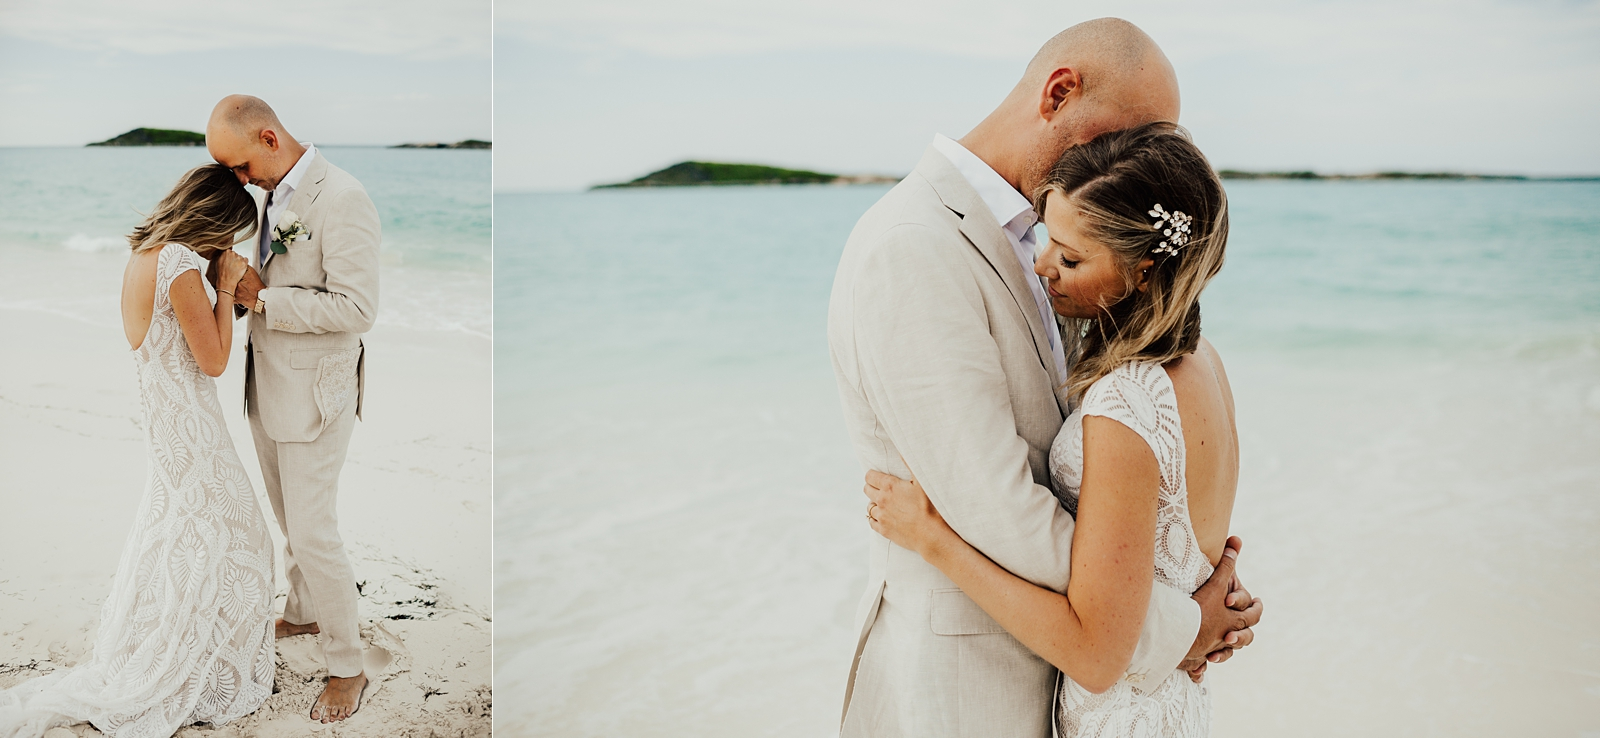 Jenni & Andrew Intimate Beach Destination Wedding in Little Exuma, Bahamas_0492.jpg